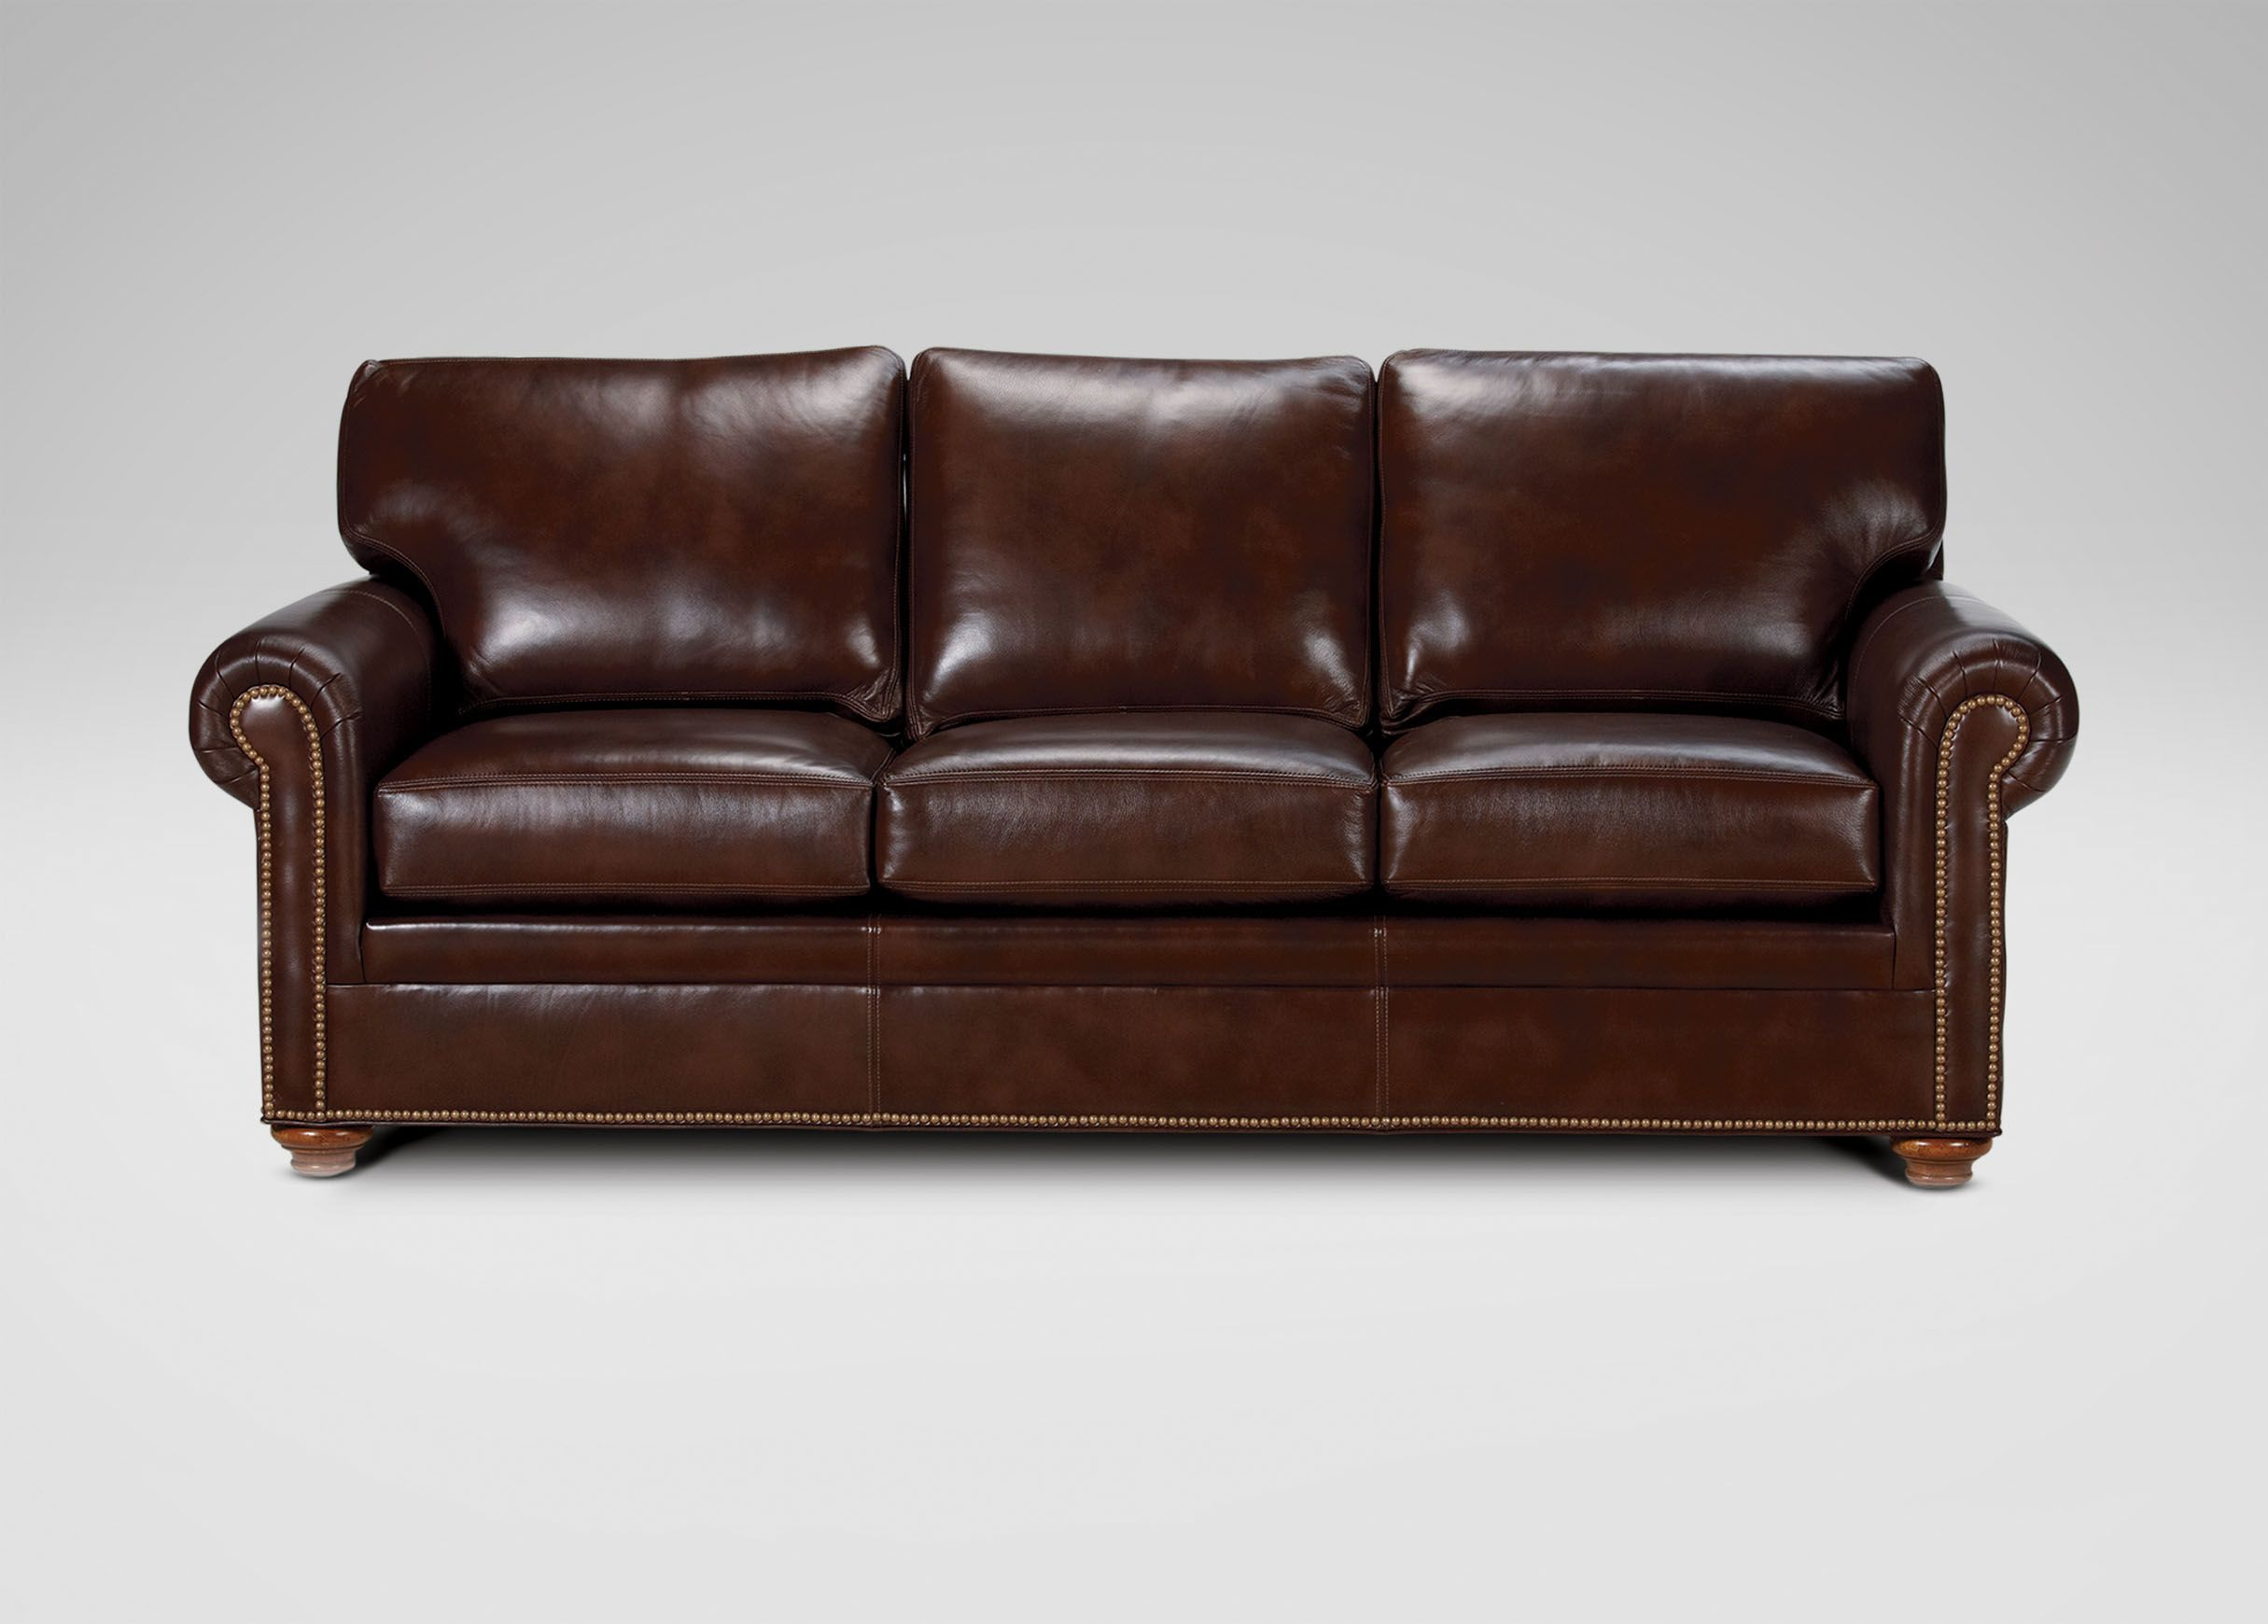 Sofa Furnitureland South Tv Apk Conner Reclining And Loveseat Set Energywarden